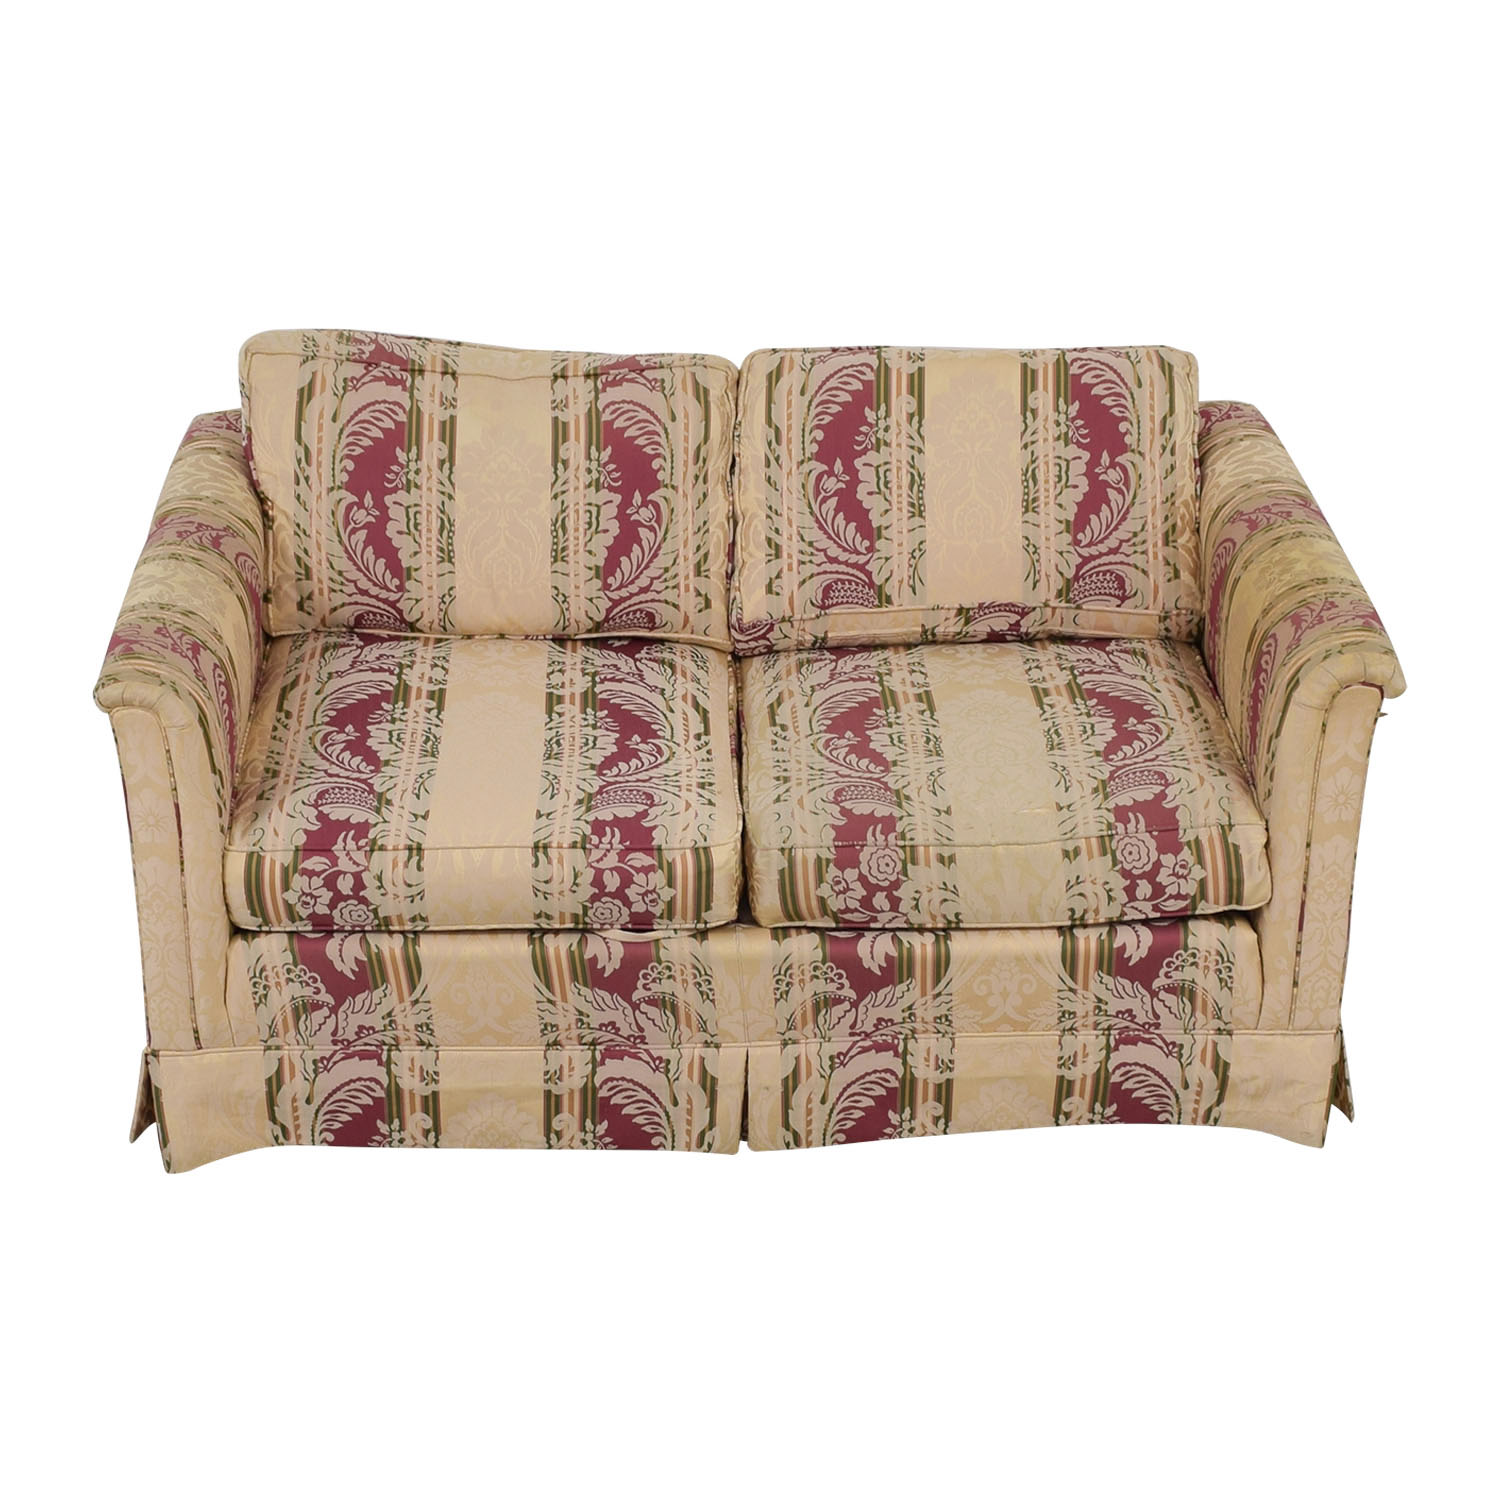 Drexel Heritage Drexel Heritage Yellow and Red Multi Color Loveseat dimensions